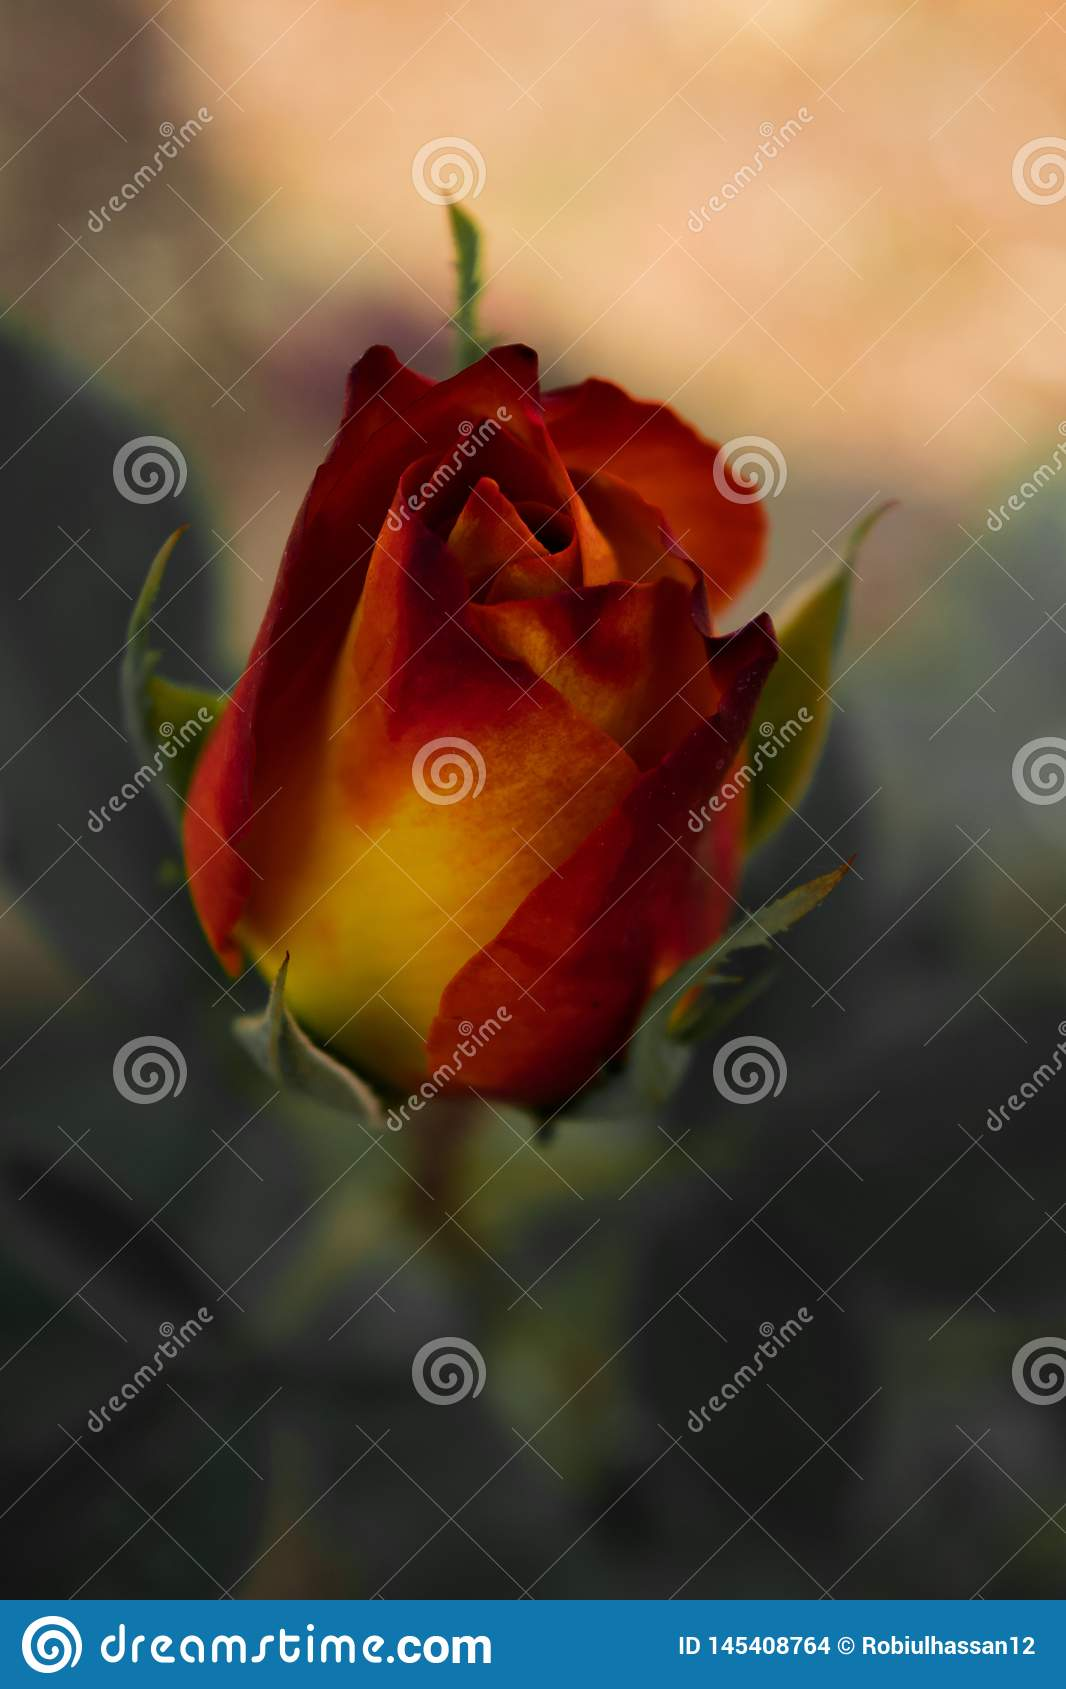 Flower image ,Rose Flower image , HD flower image